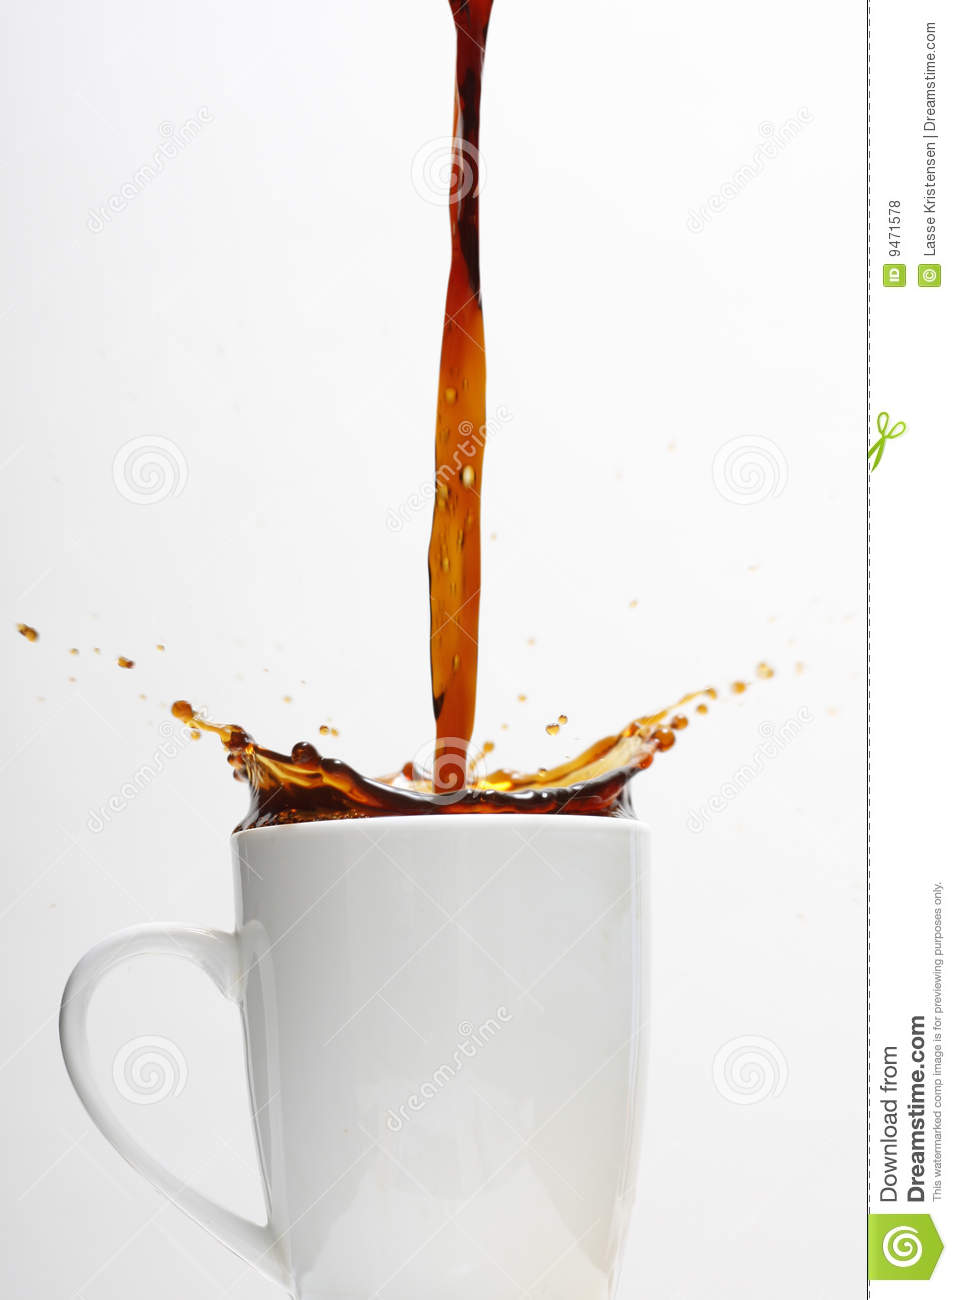 Overflowing coffee cup